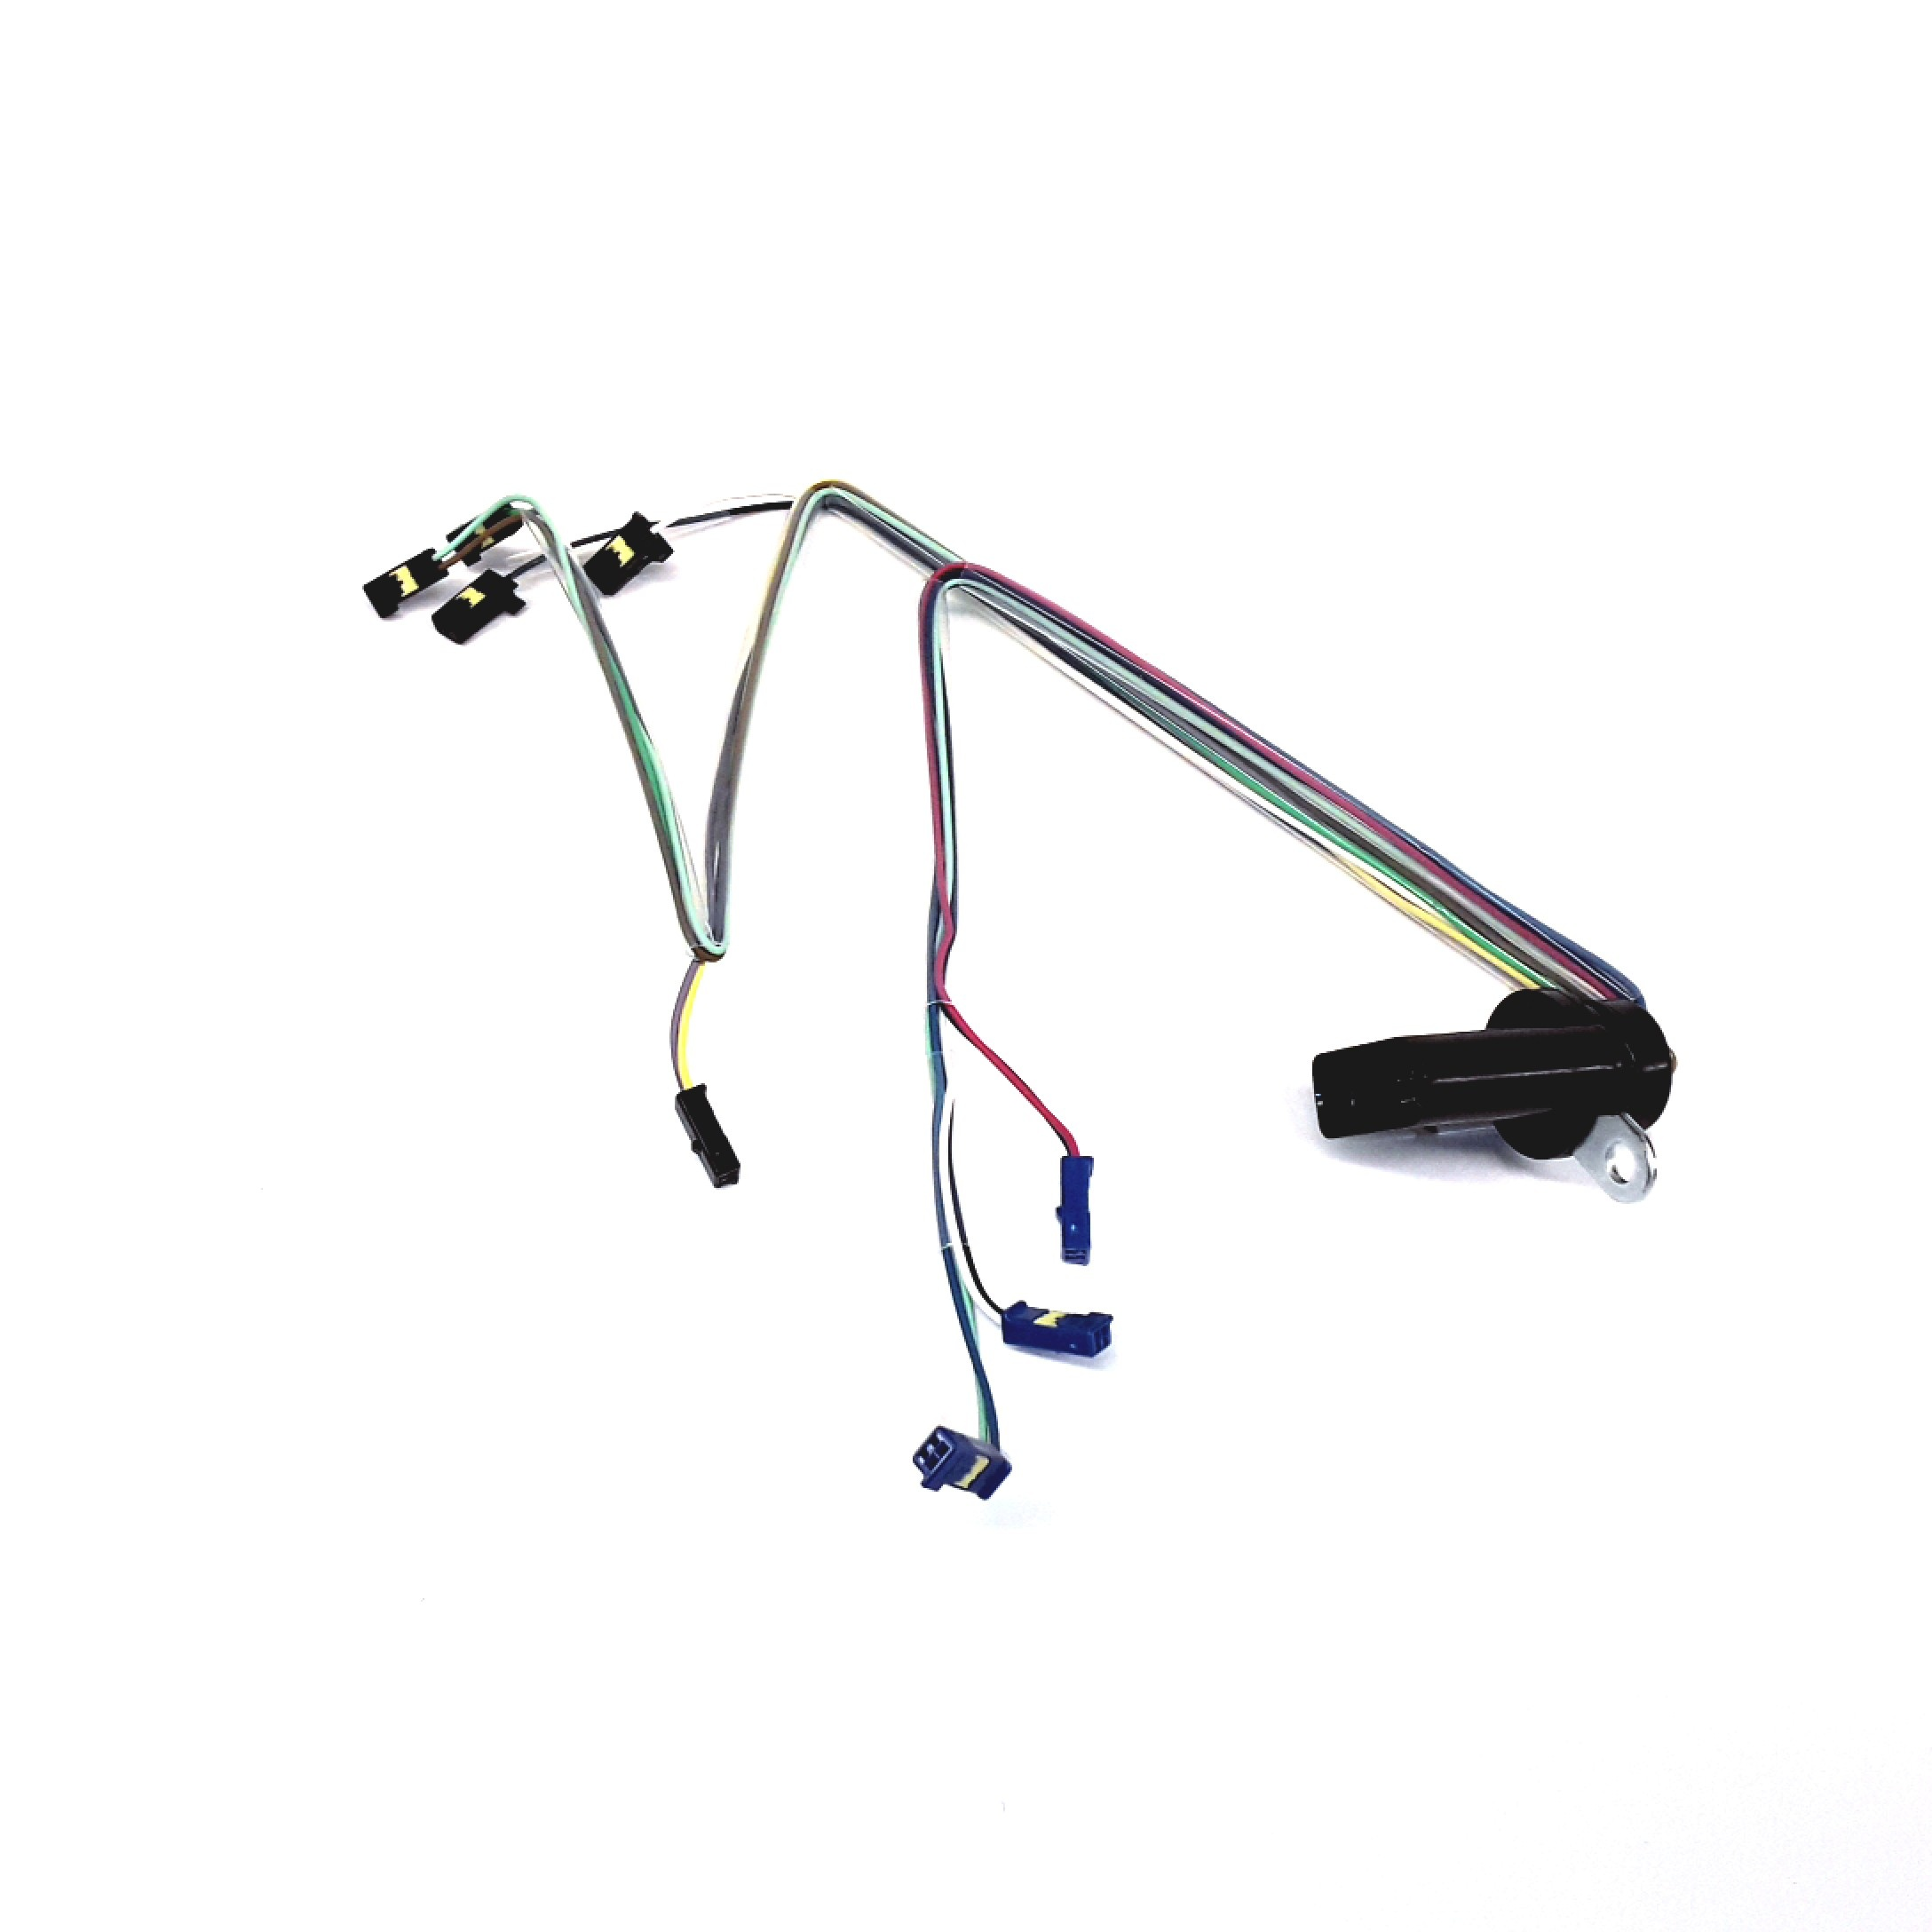 volkswagen golf 1 6l flat contact housing harness for 6